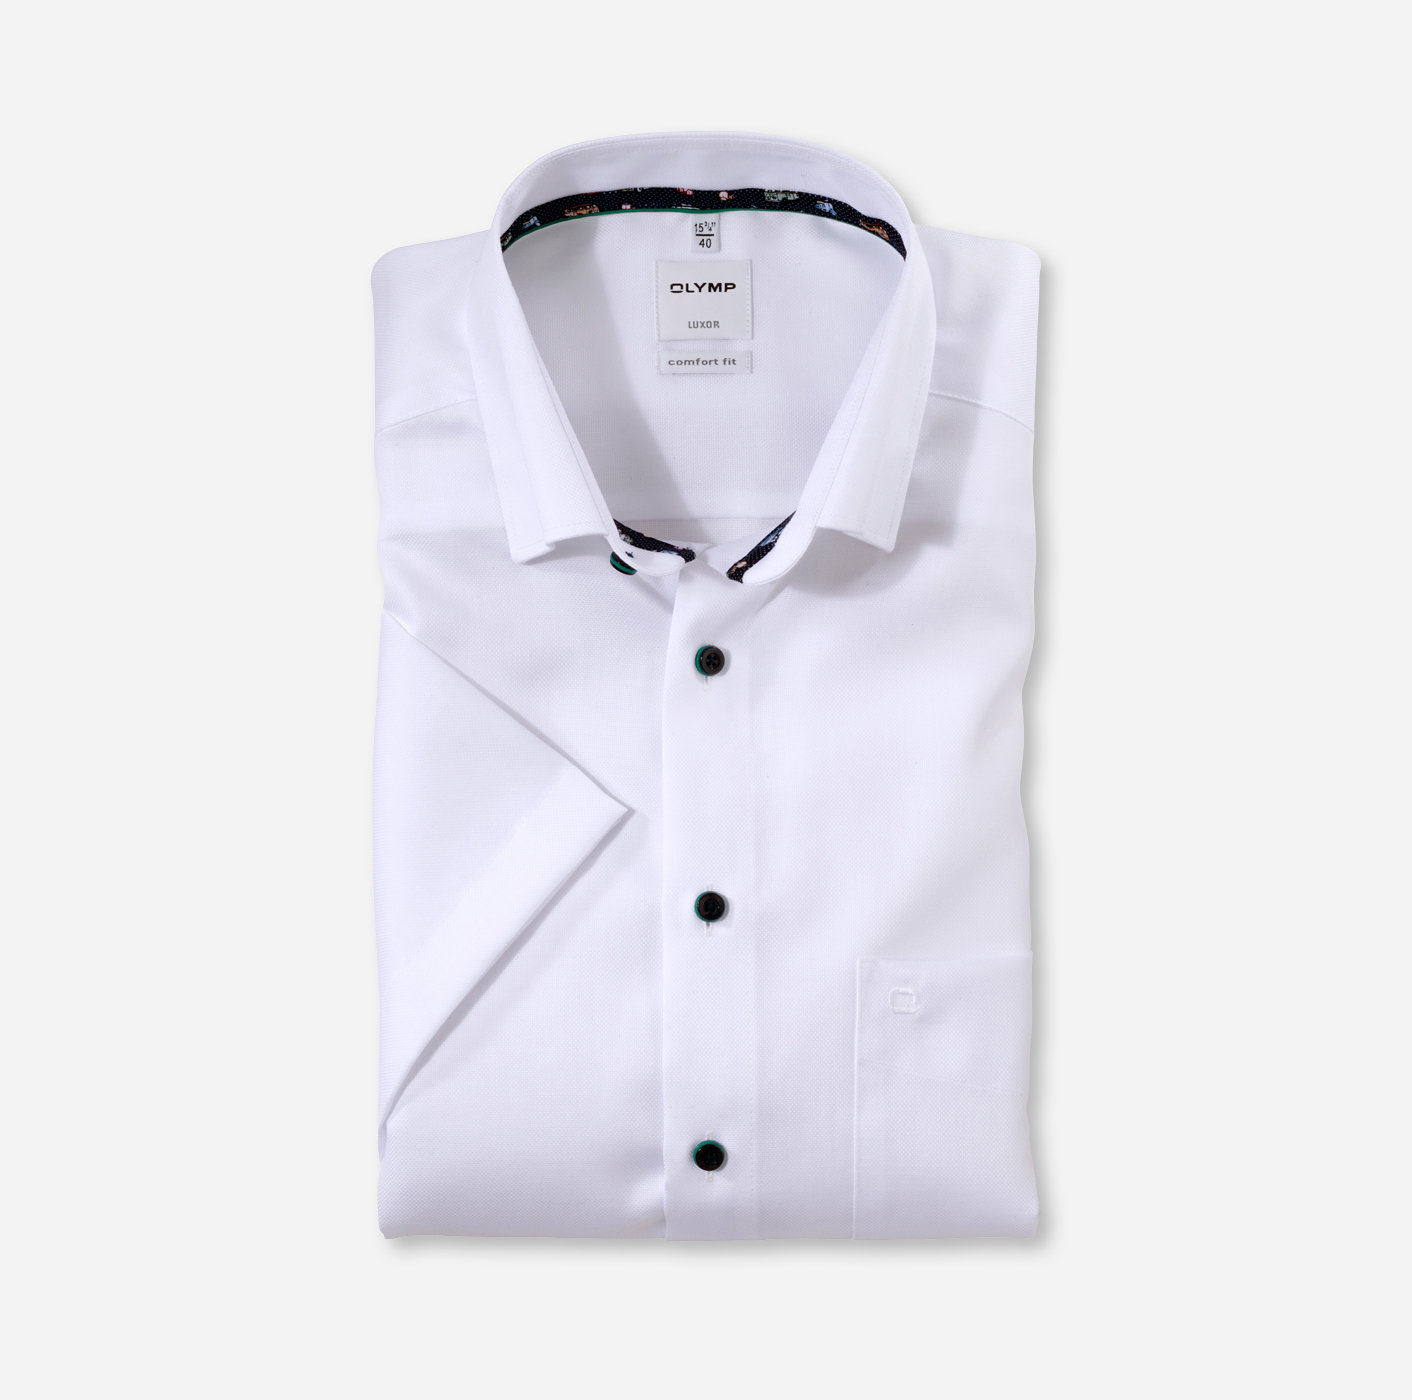 Business shirt   OLYMP Luxor, comfort fit, Under button down ...